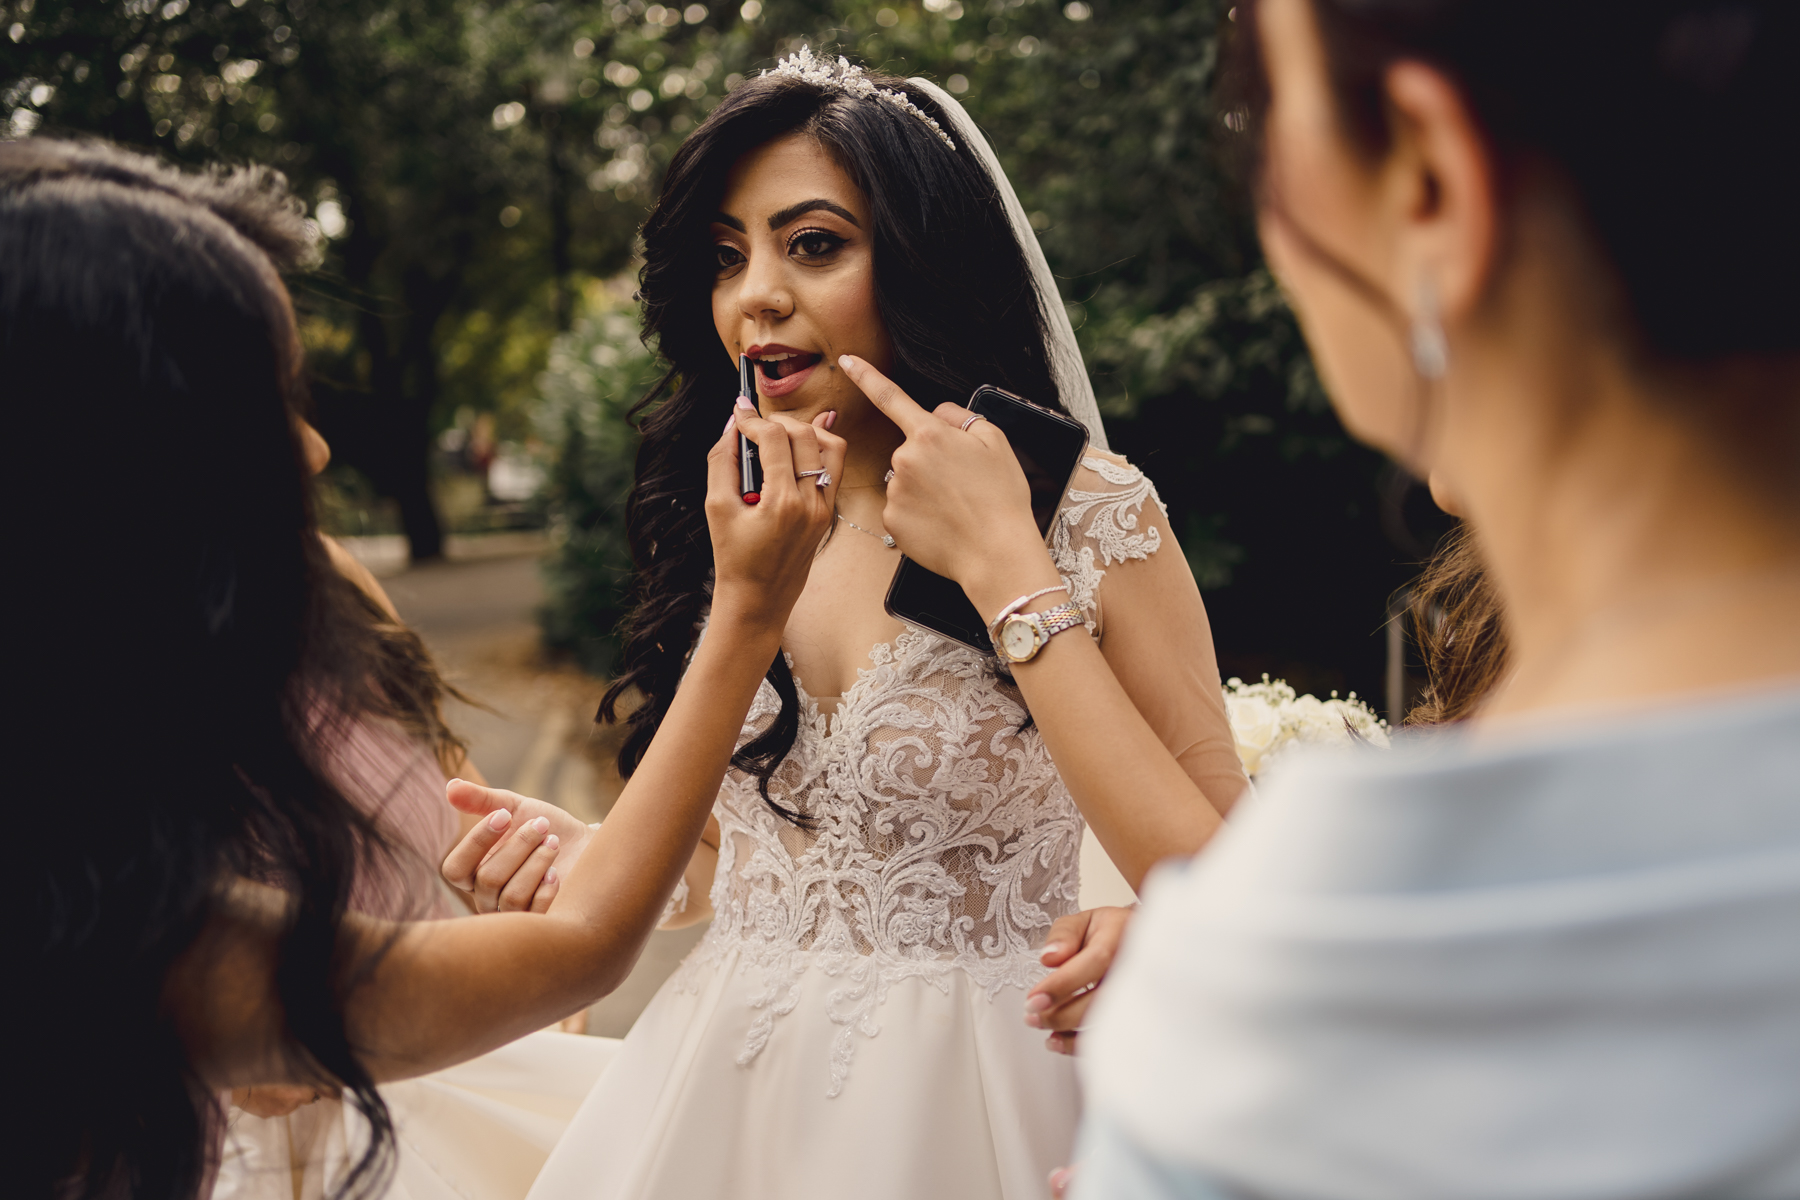 London Wedding Reportage Photographer | The attendants touch up the bride's makeup